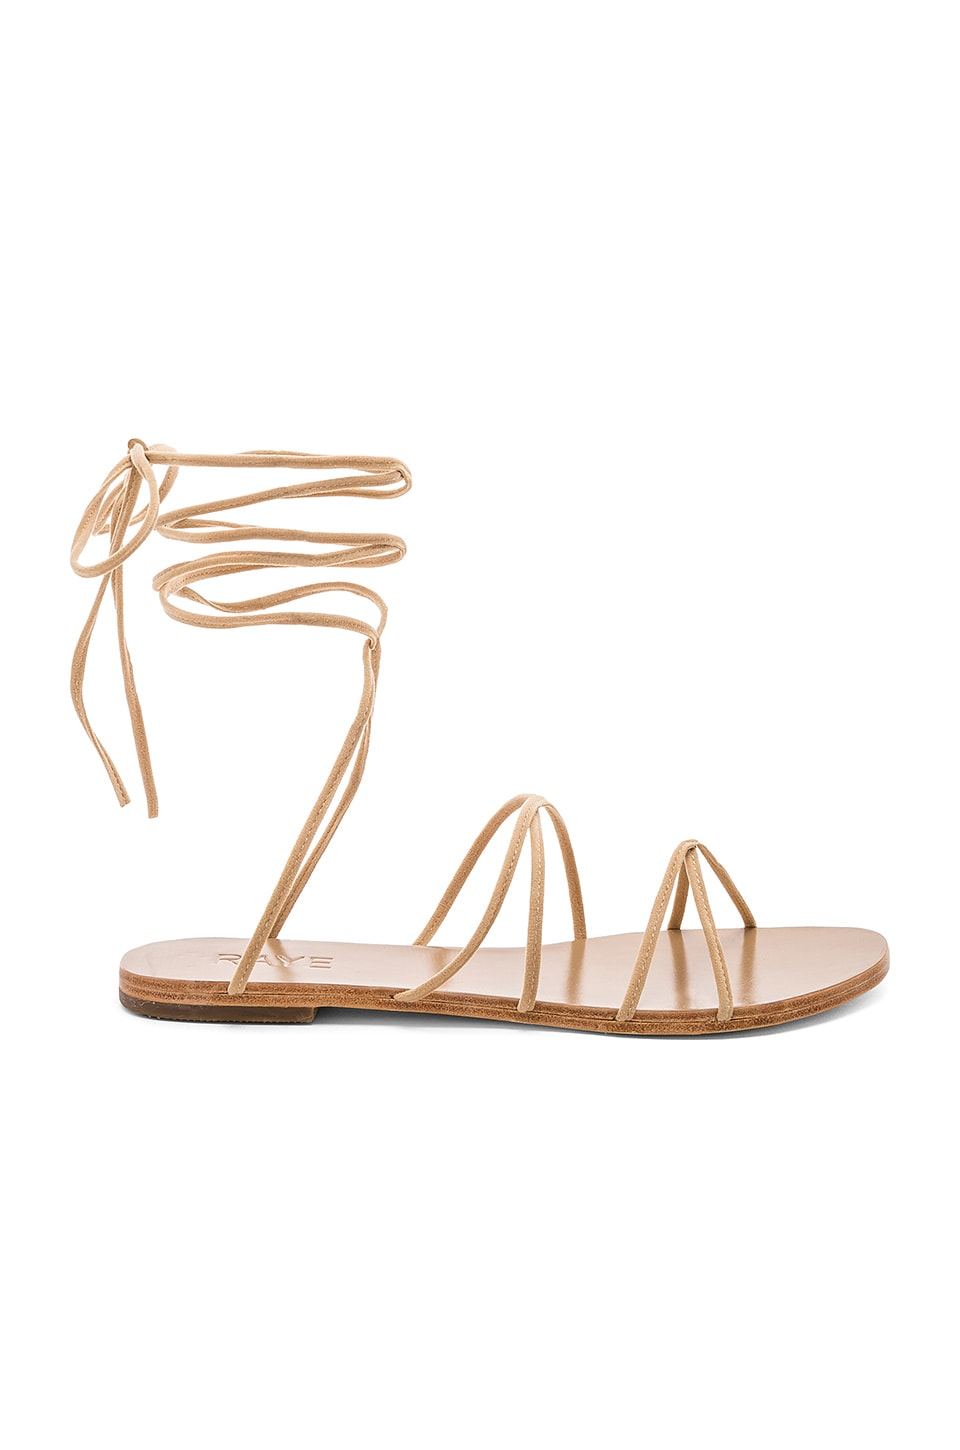 Collette Sandal